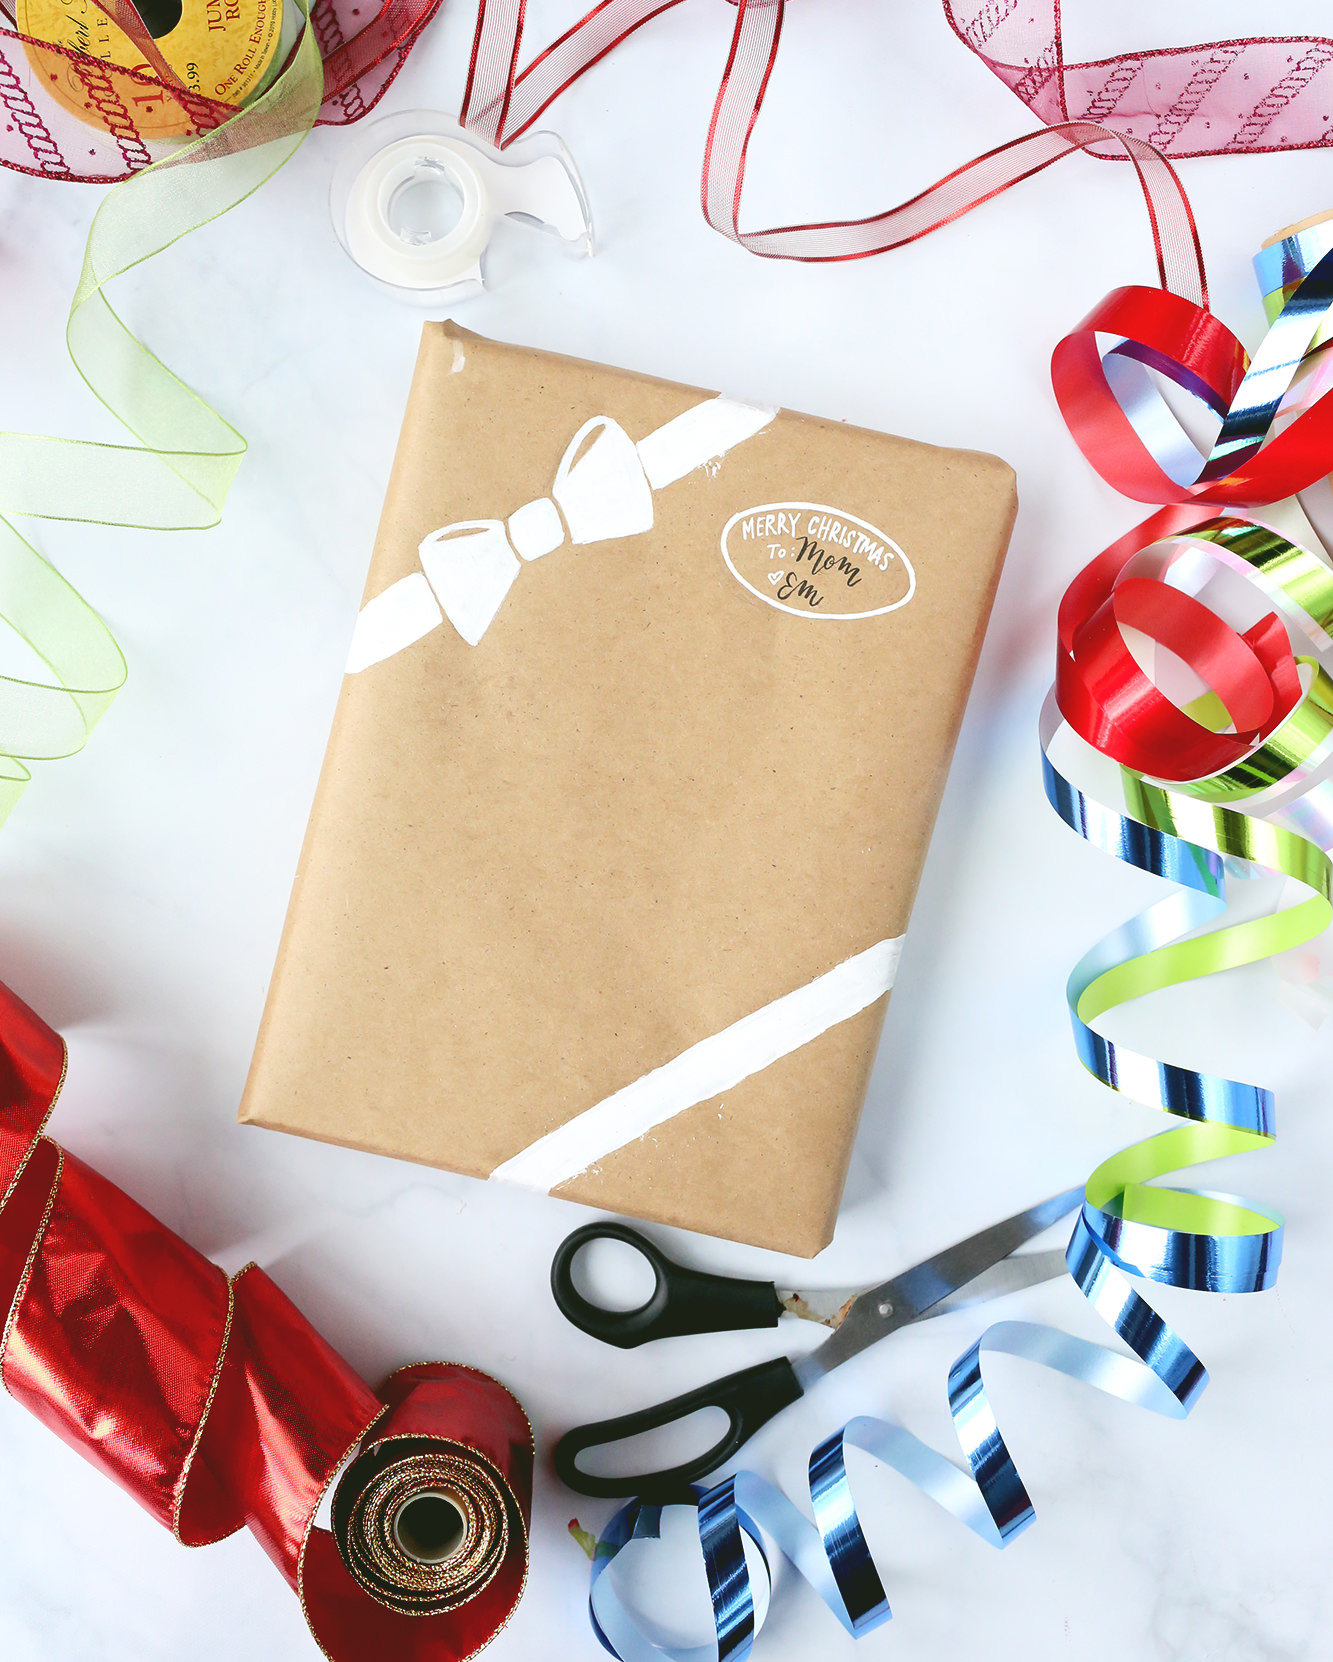 Paint a ribbon and bow on your Christmas gifts! More ideas on Lily & Val Living